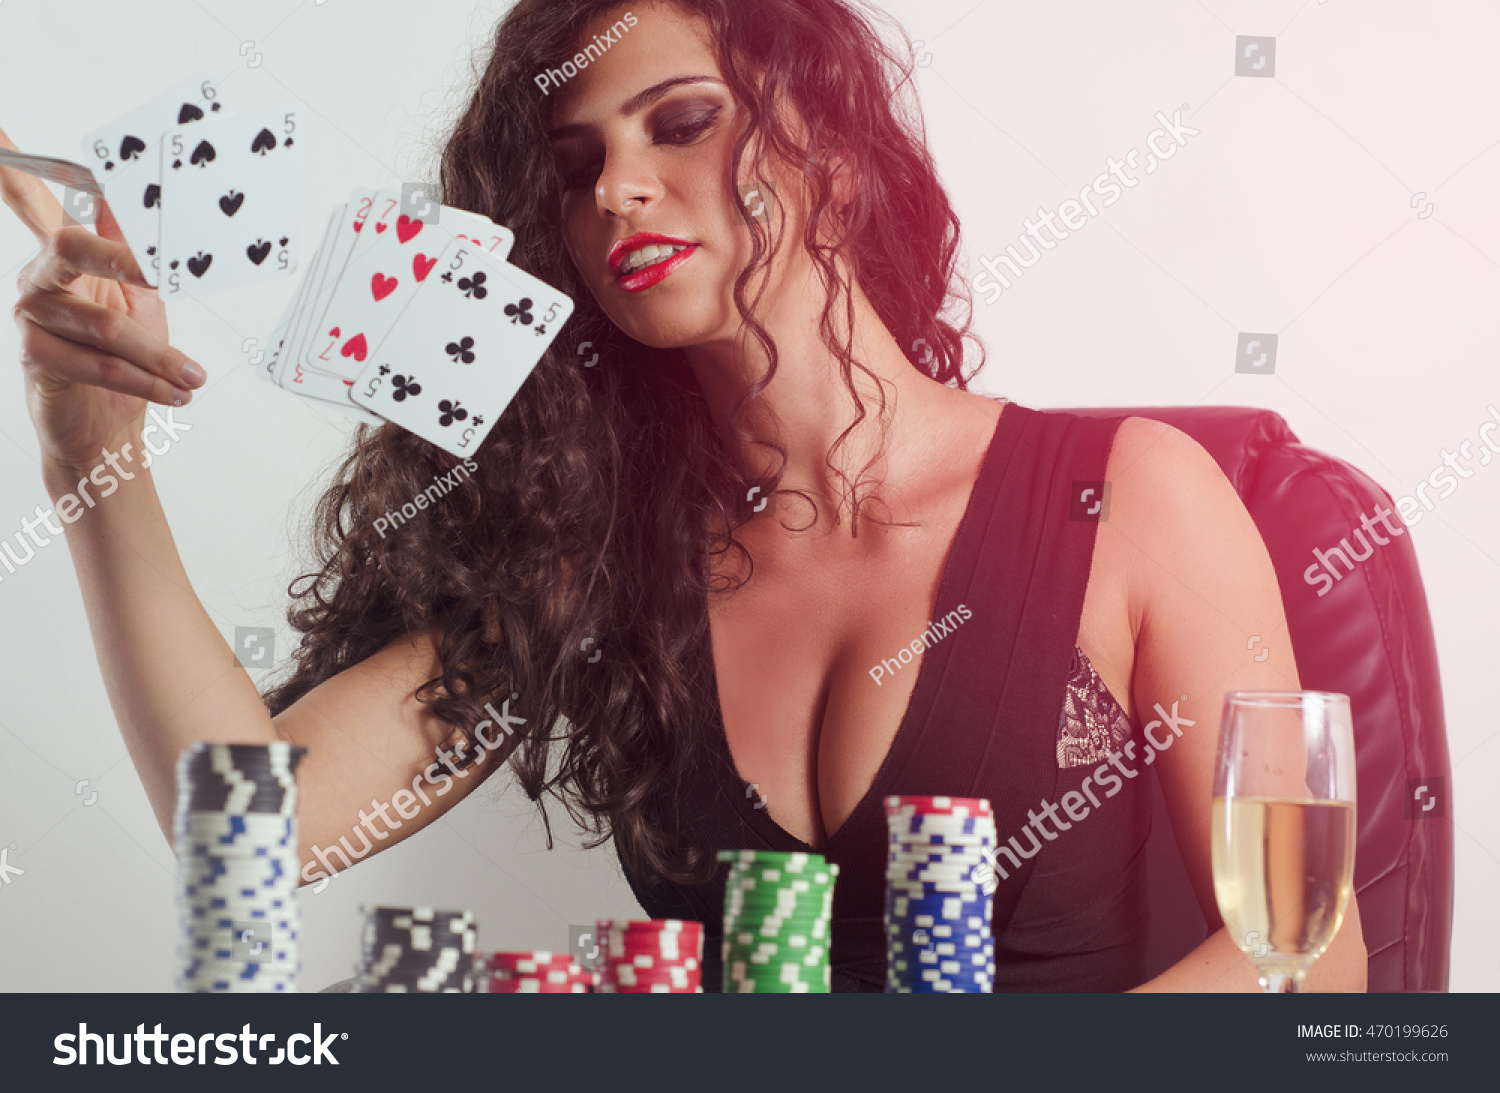 GET - POWERFULL - 220 - DA/DR 50+ PBN Links Gambling/Poker/Casino/Gaming Permanent Backlinks